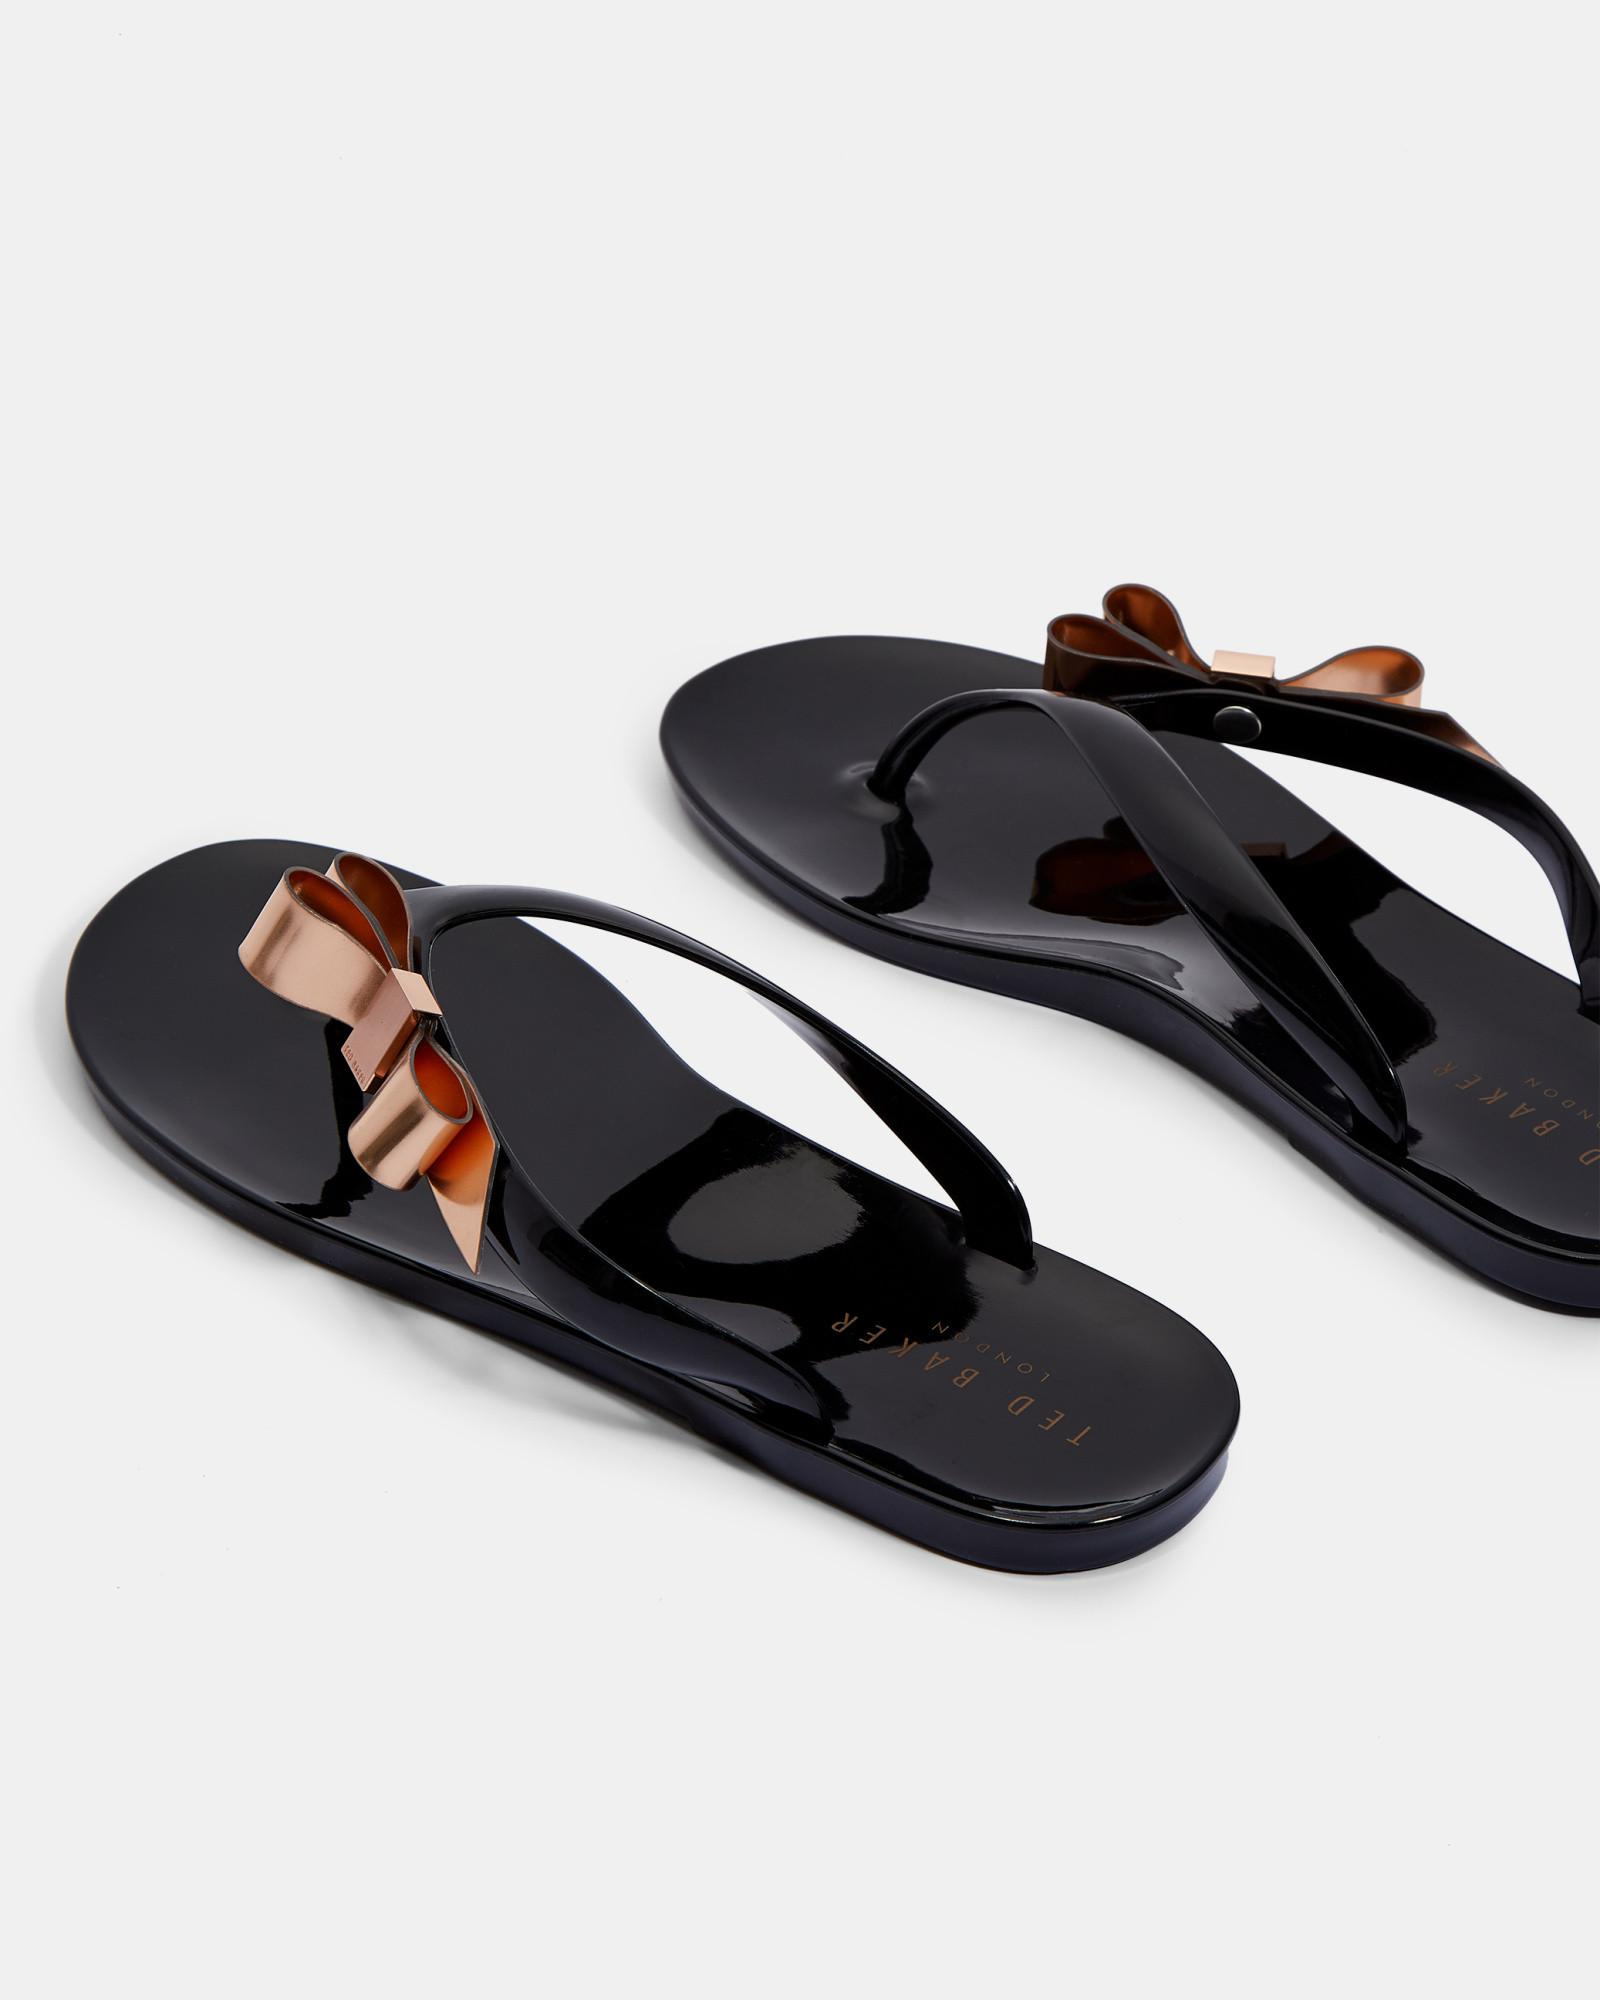 263d8d50e Lyst - Ted Baker Bow Detail Jelly Flip Flops in Black - Save 52%